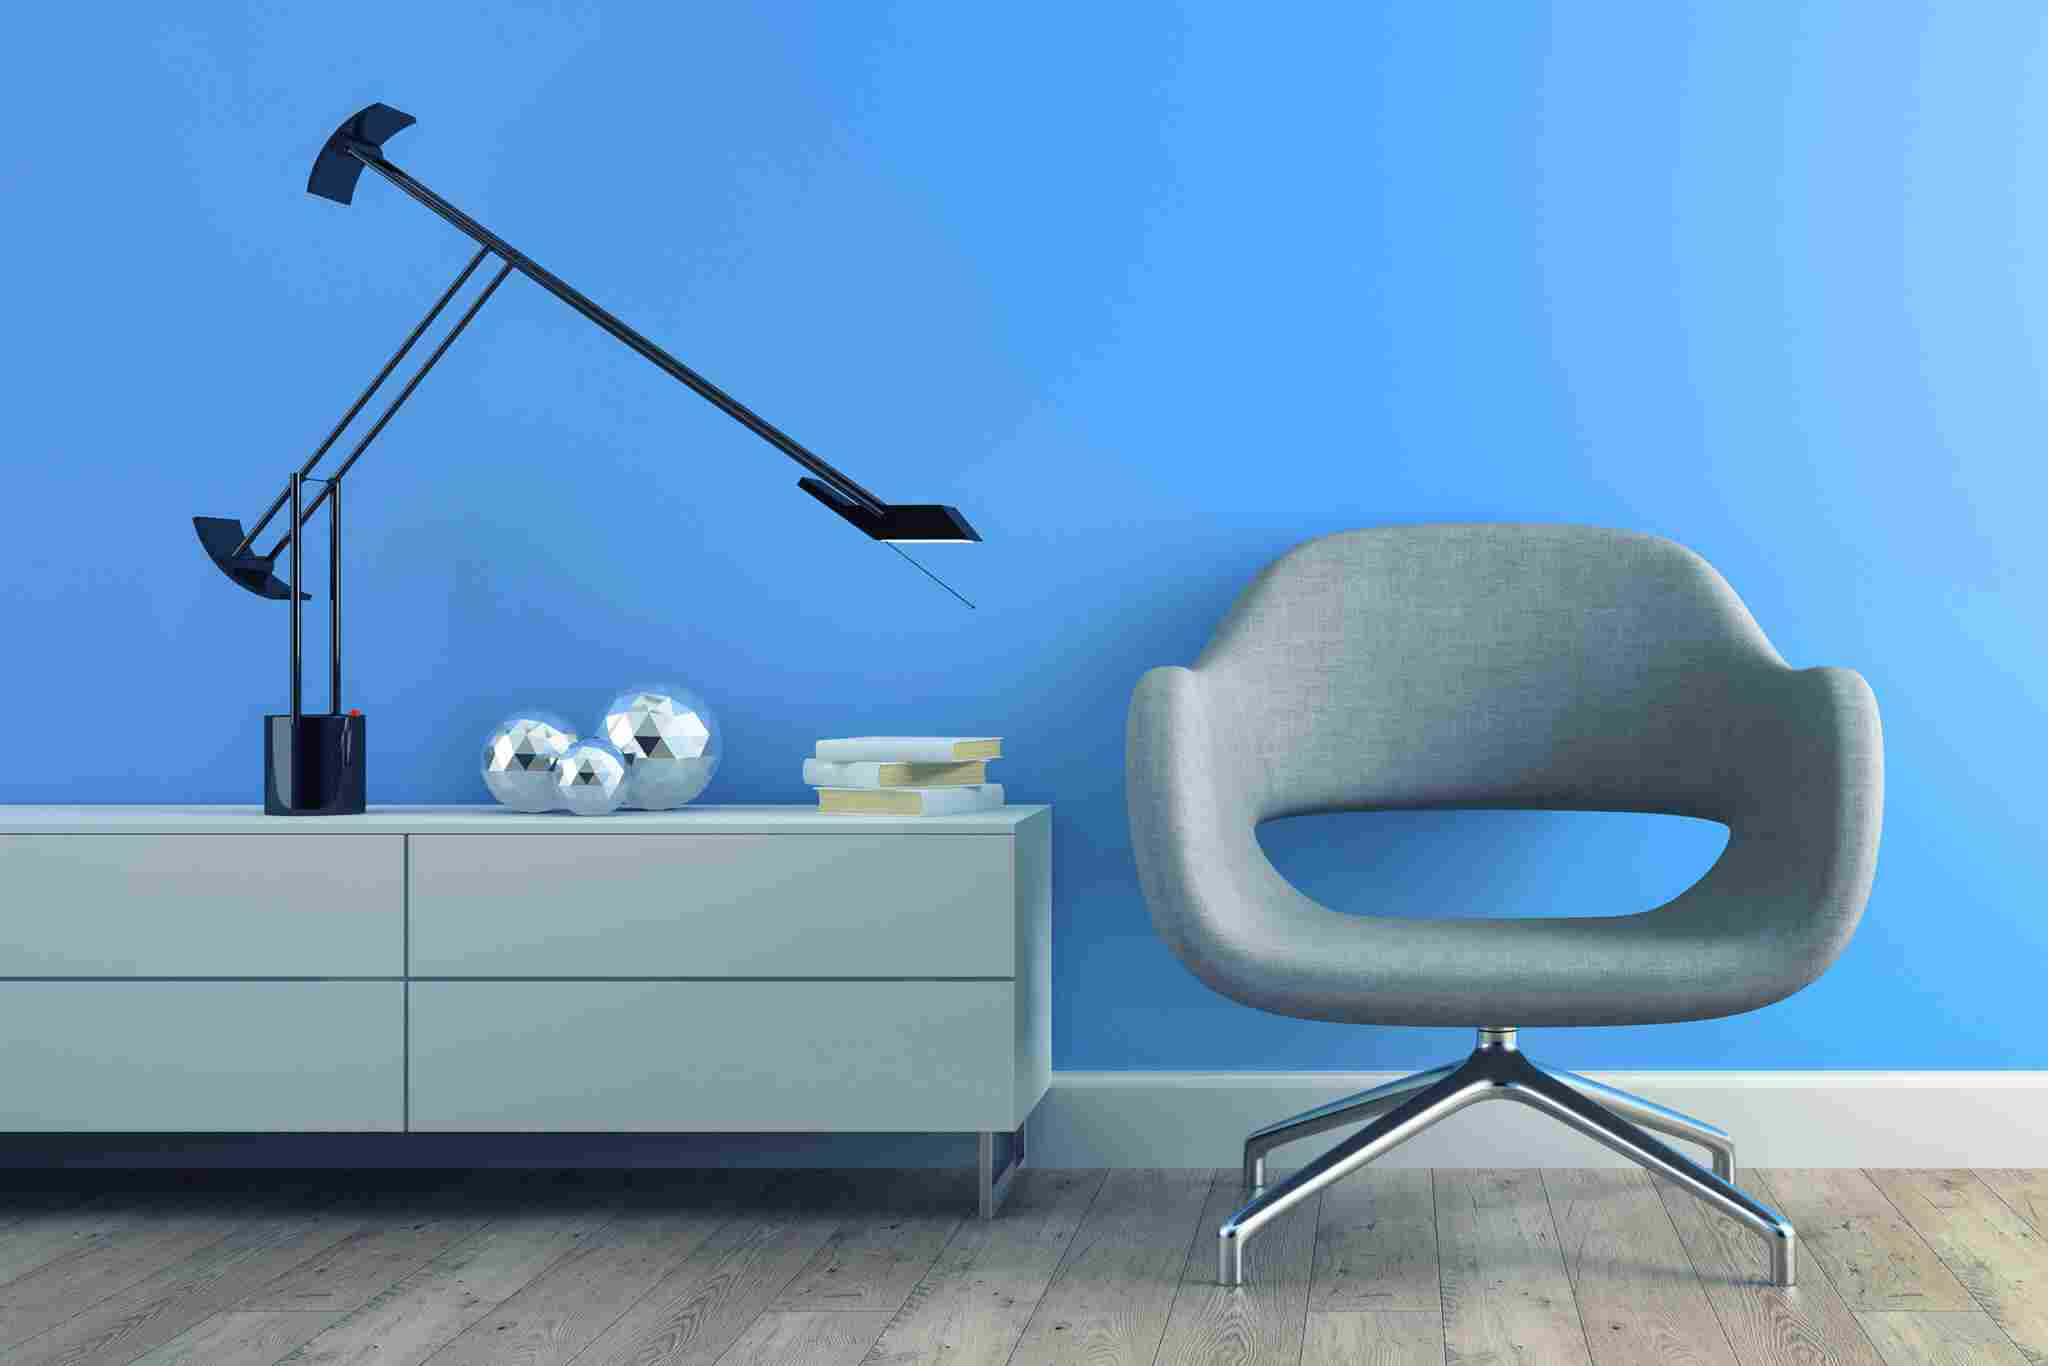 https://www.altitudetrends.ca/wp-content/uploads/2017/05/image-chair-blue-wall.jpg